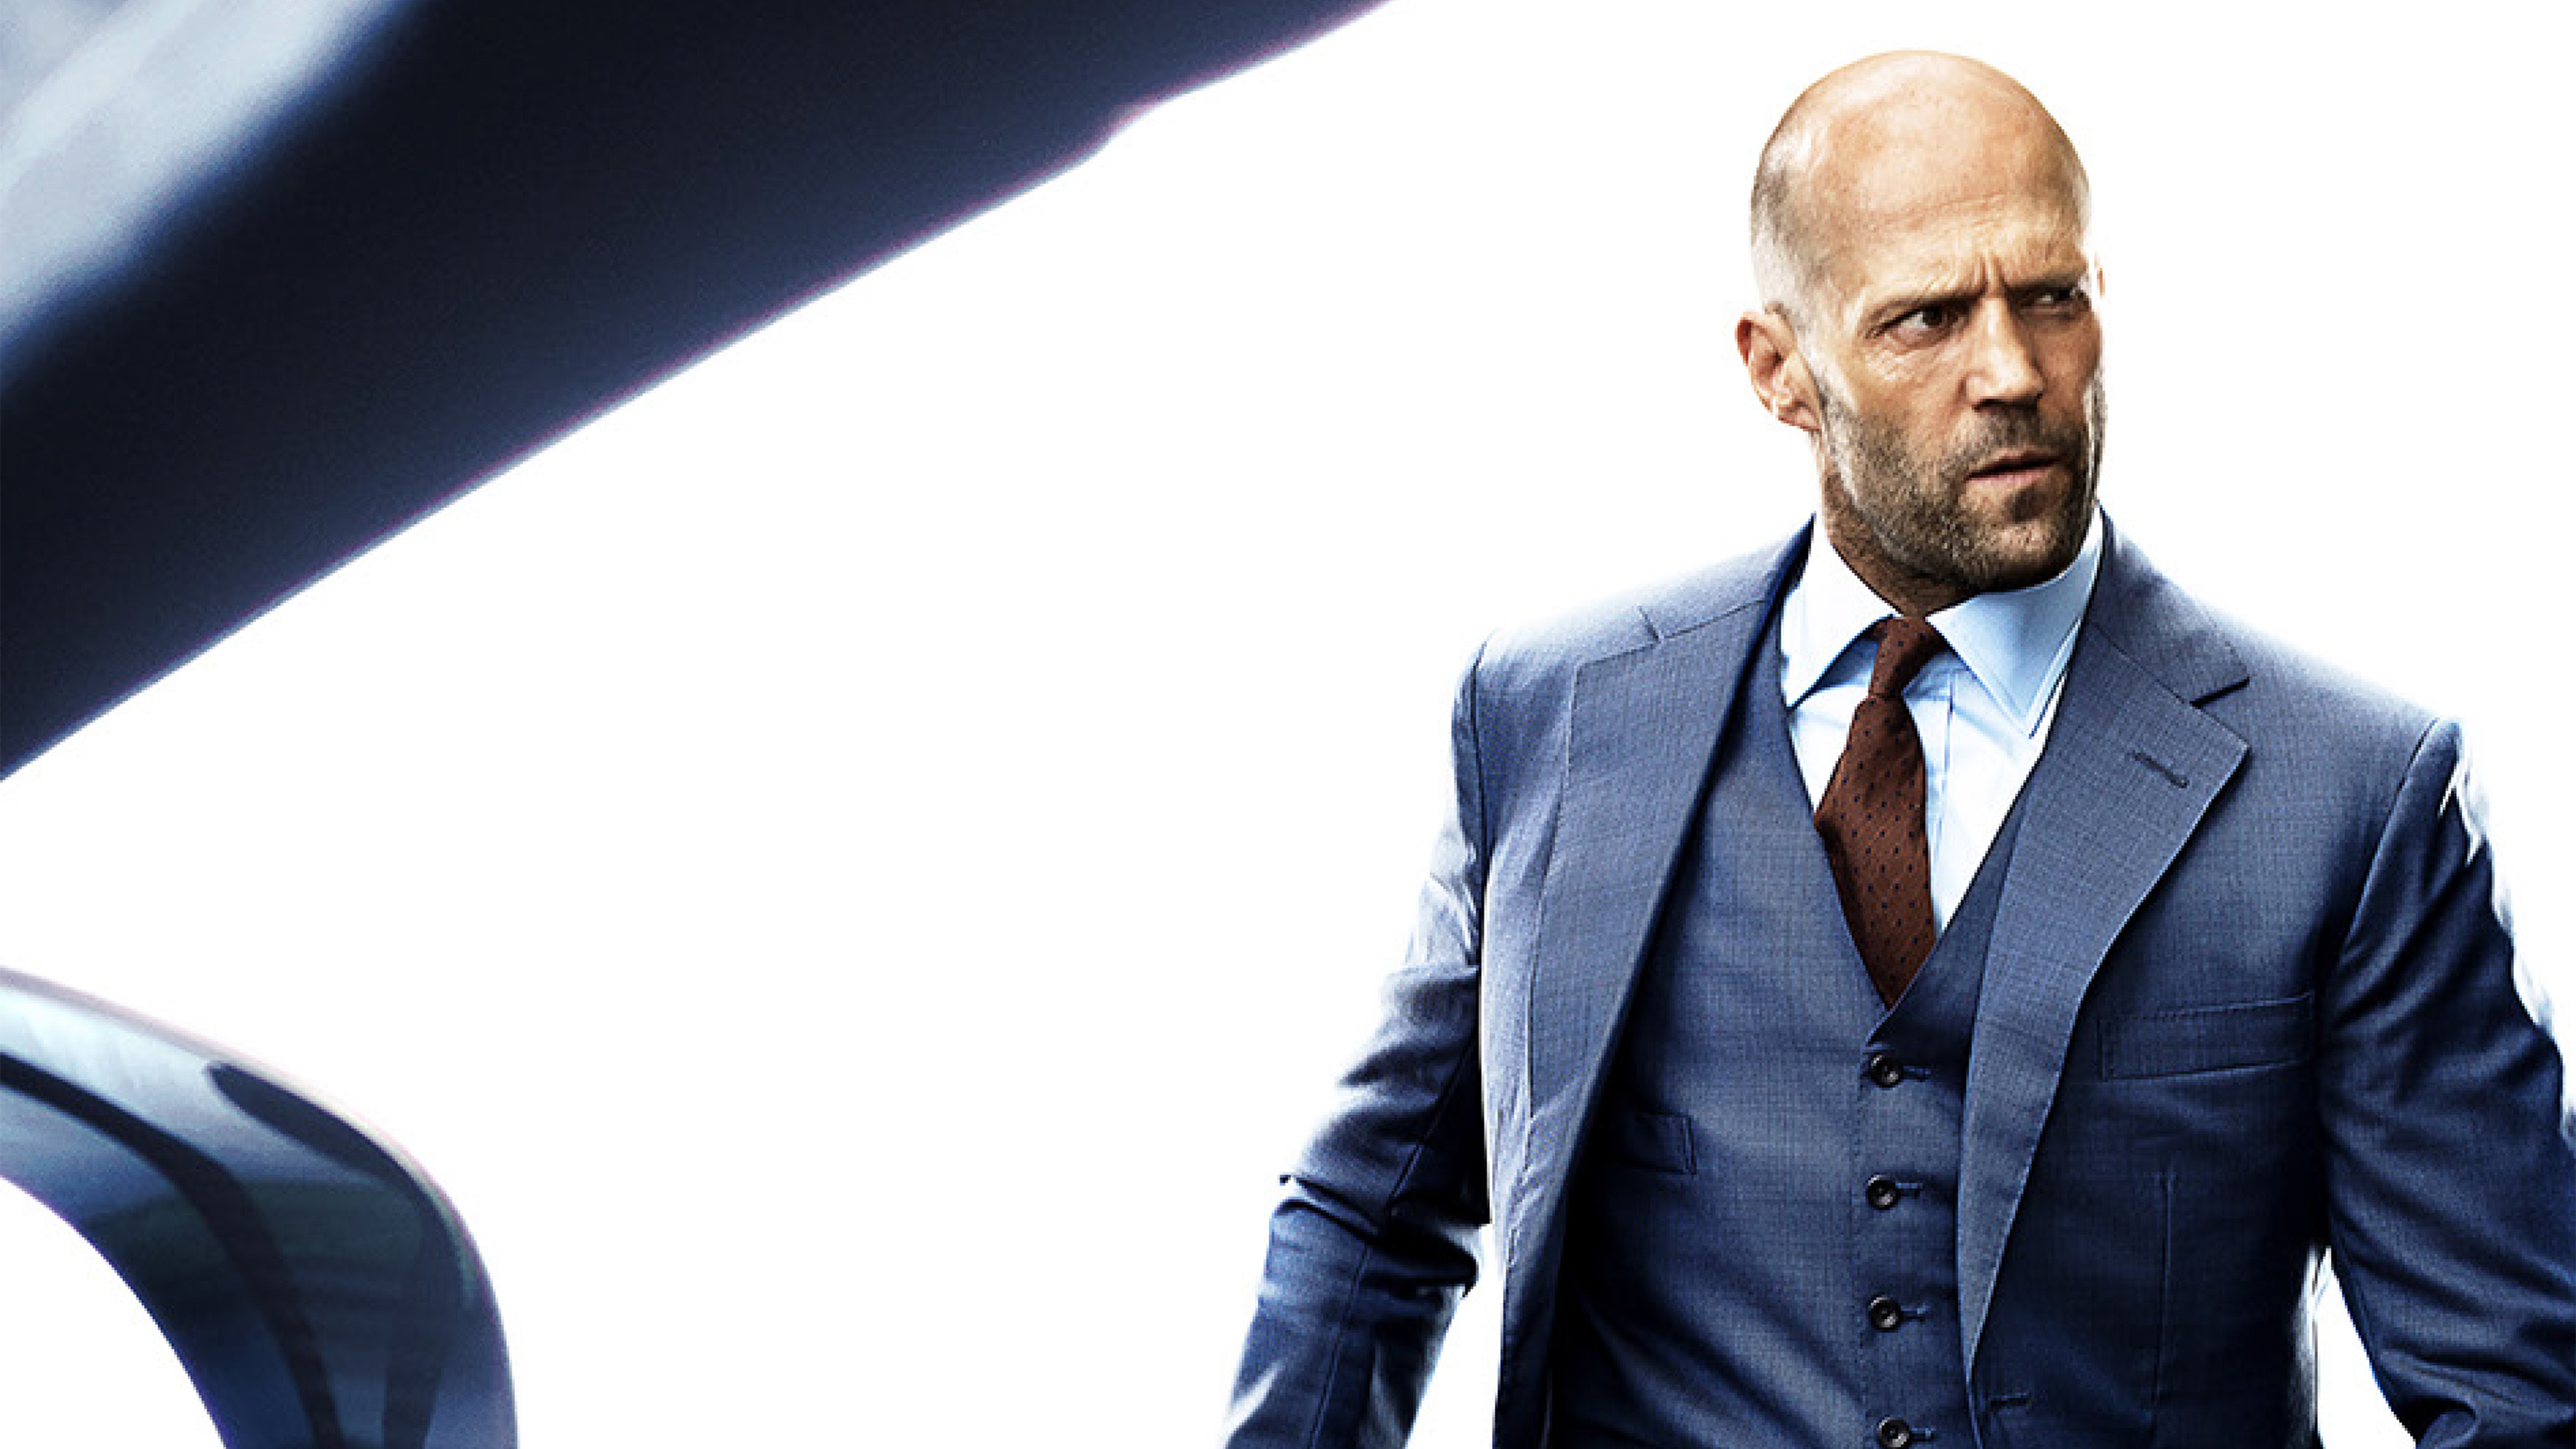 Jason Statham in Fast & Furious Presents Hobbs & Shaw Wallpapers | HD Wallpapers